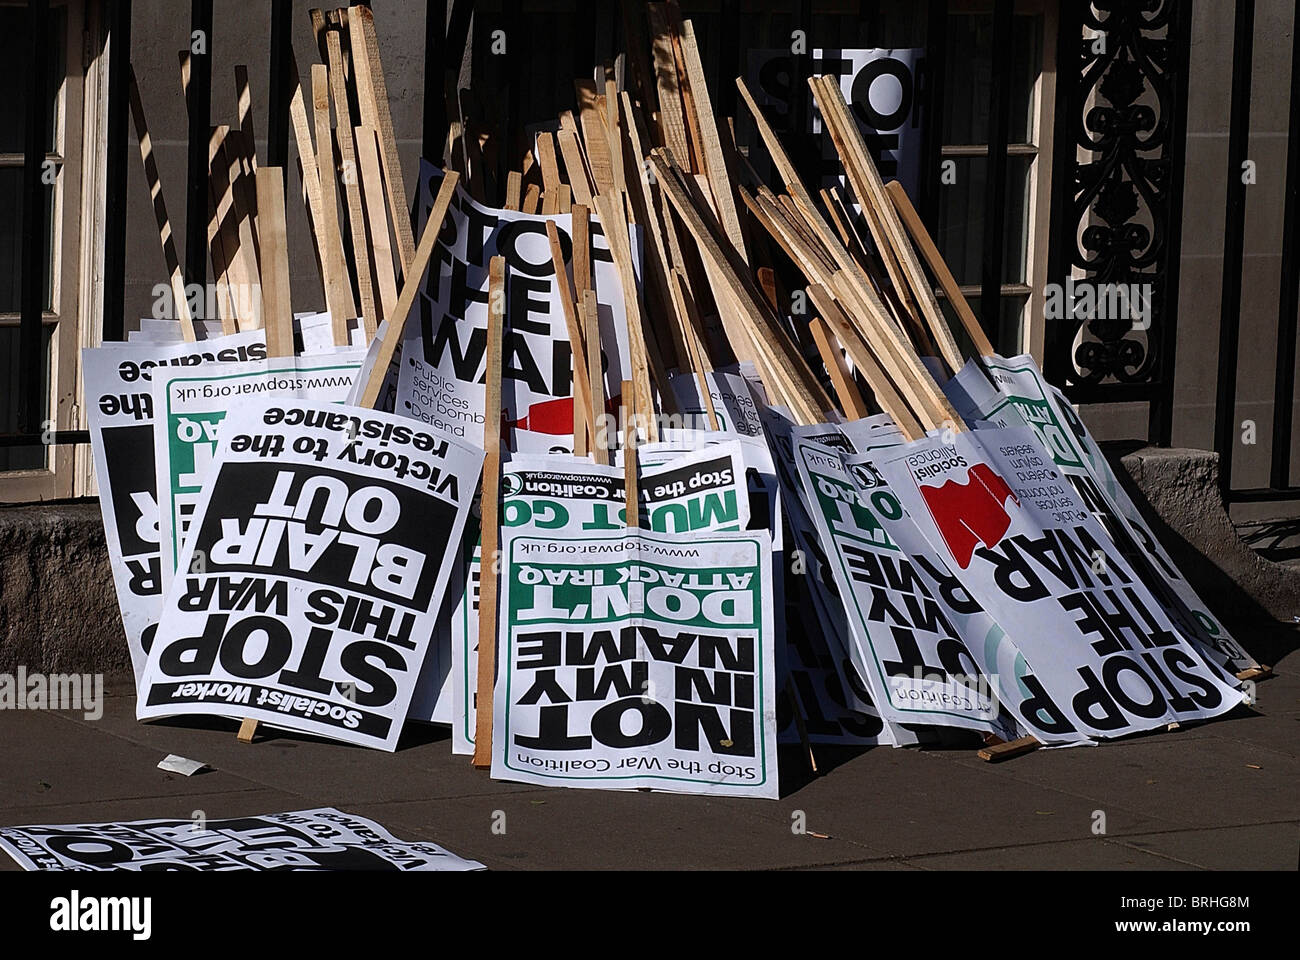 Discarded placards after the Grosvenor Sqr. anti war demo, 05-04-2003. Photo by John Robertson-Tel.07850 931219. - Stock Image